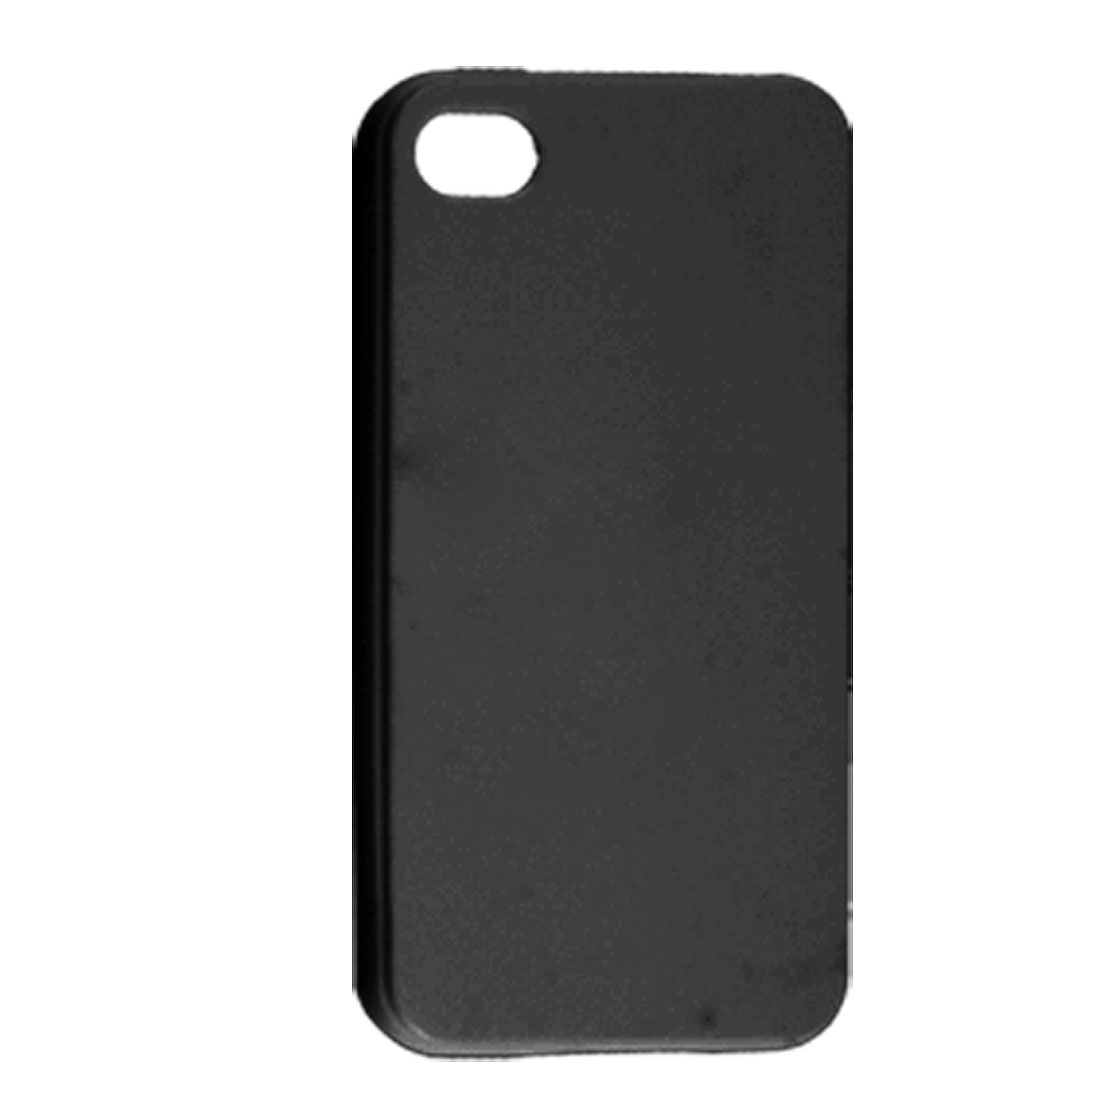 Anti Dust TPU Soft Plastic Black Cover Case for Apple iPhone 4 4G